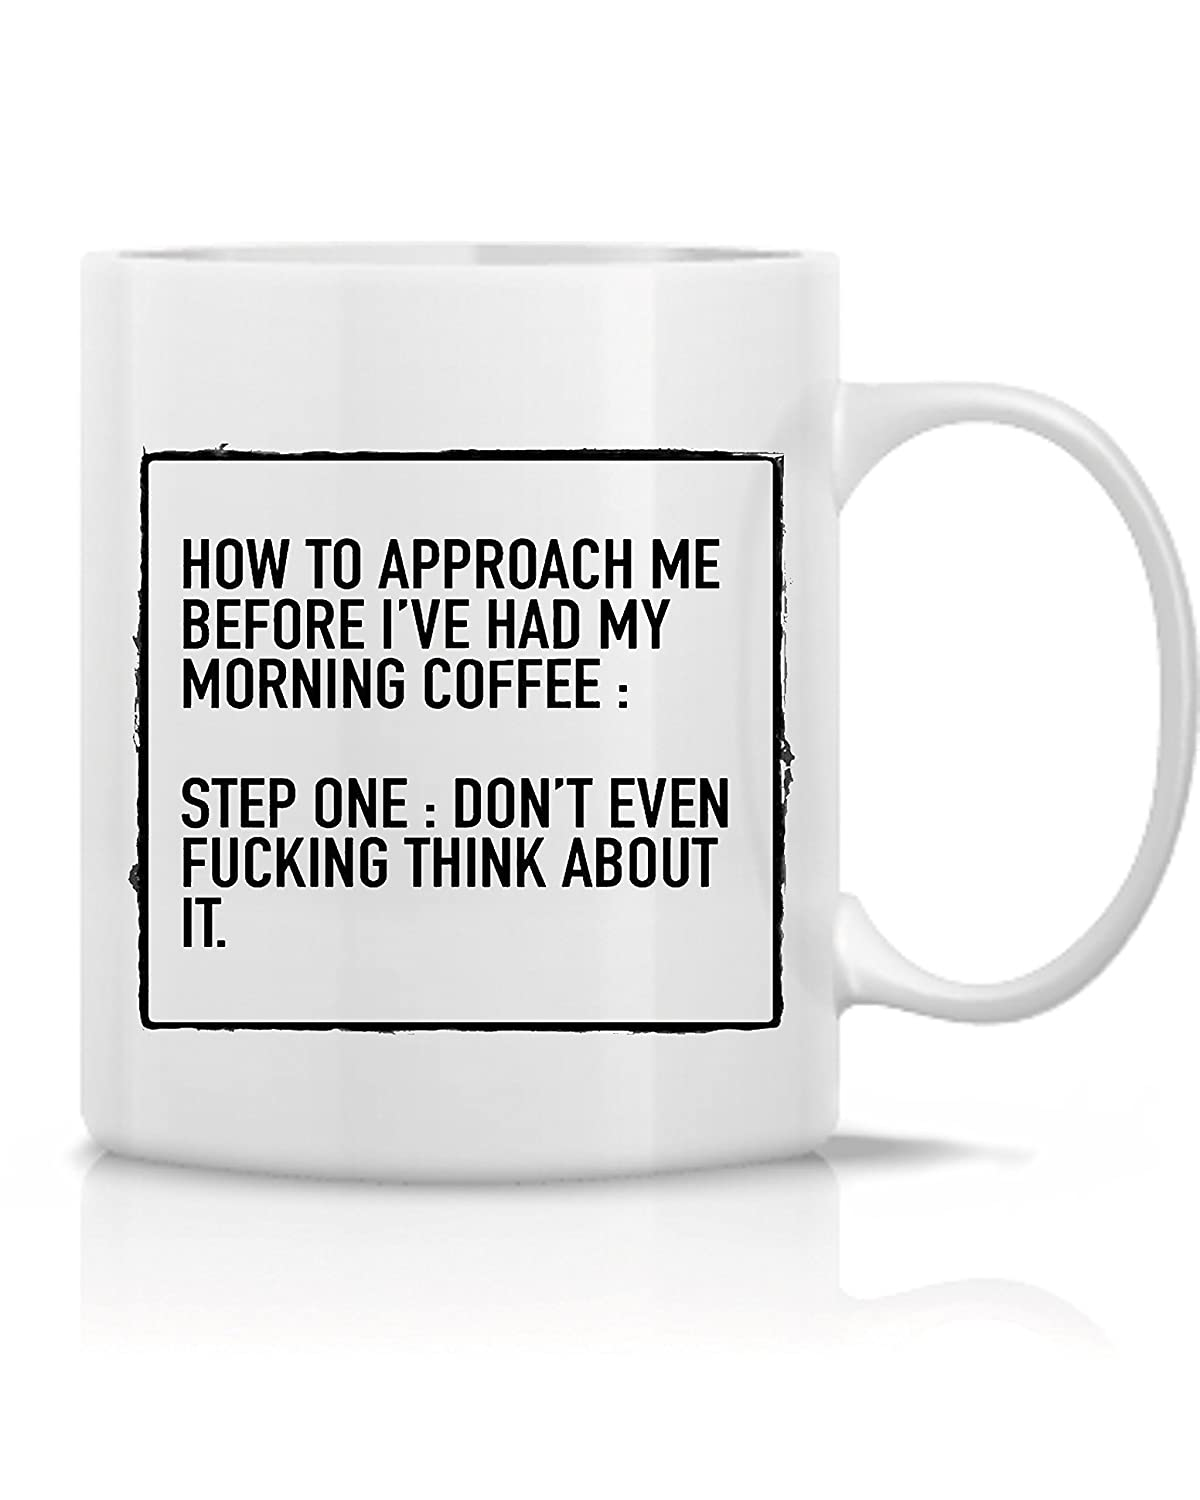 Hot Ass Mug's - How To Approach Me Before I've Had My Morning Coffee Mug -  Great Gift for Dad ,Mom ,Husband ,Wife,Co-Worker, Bosses , Teacher - Funny